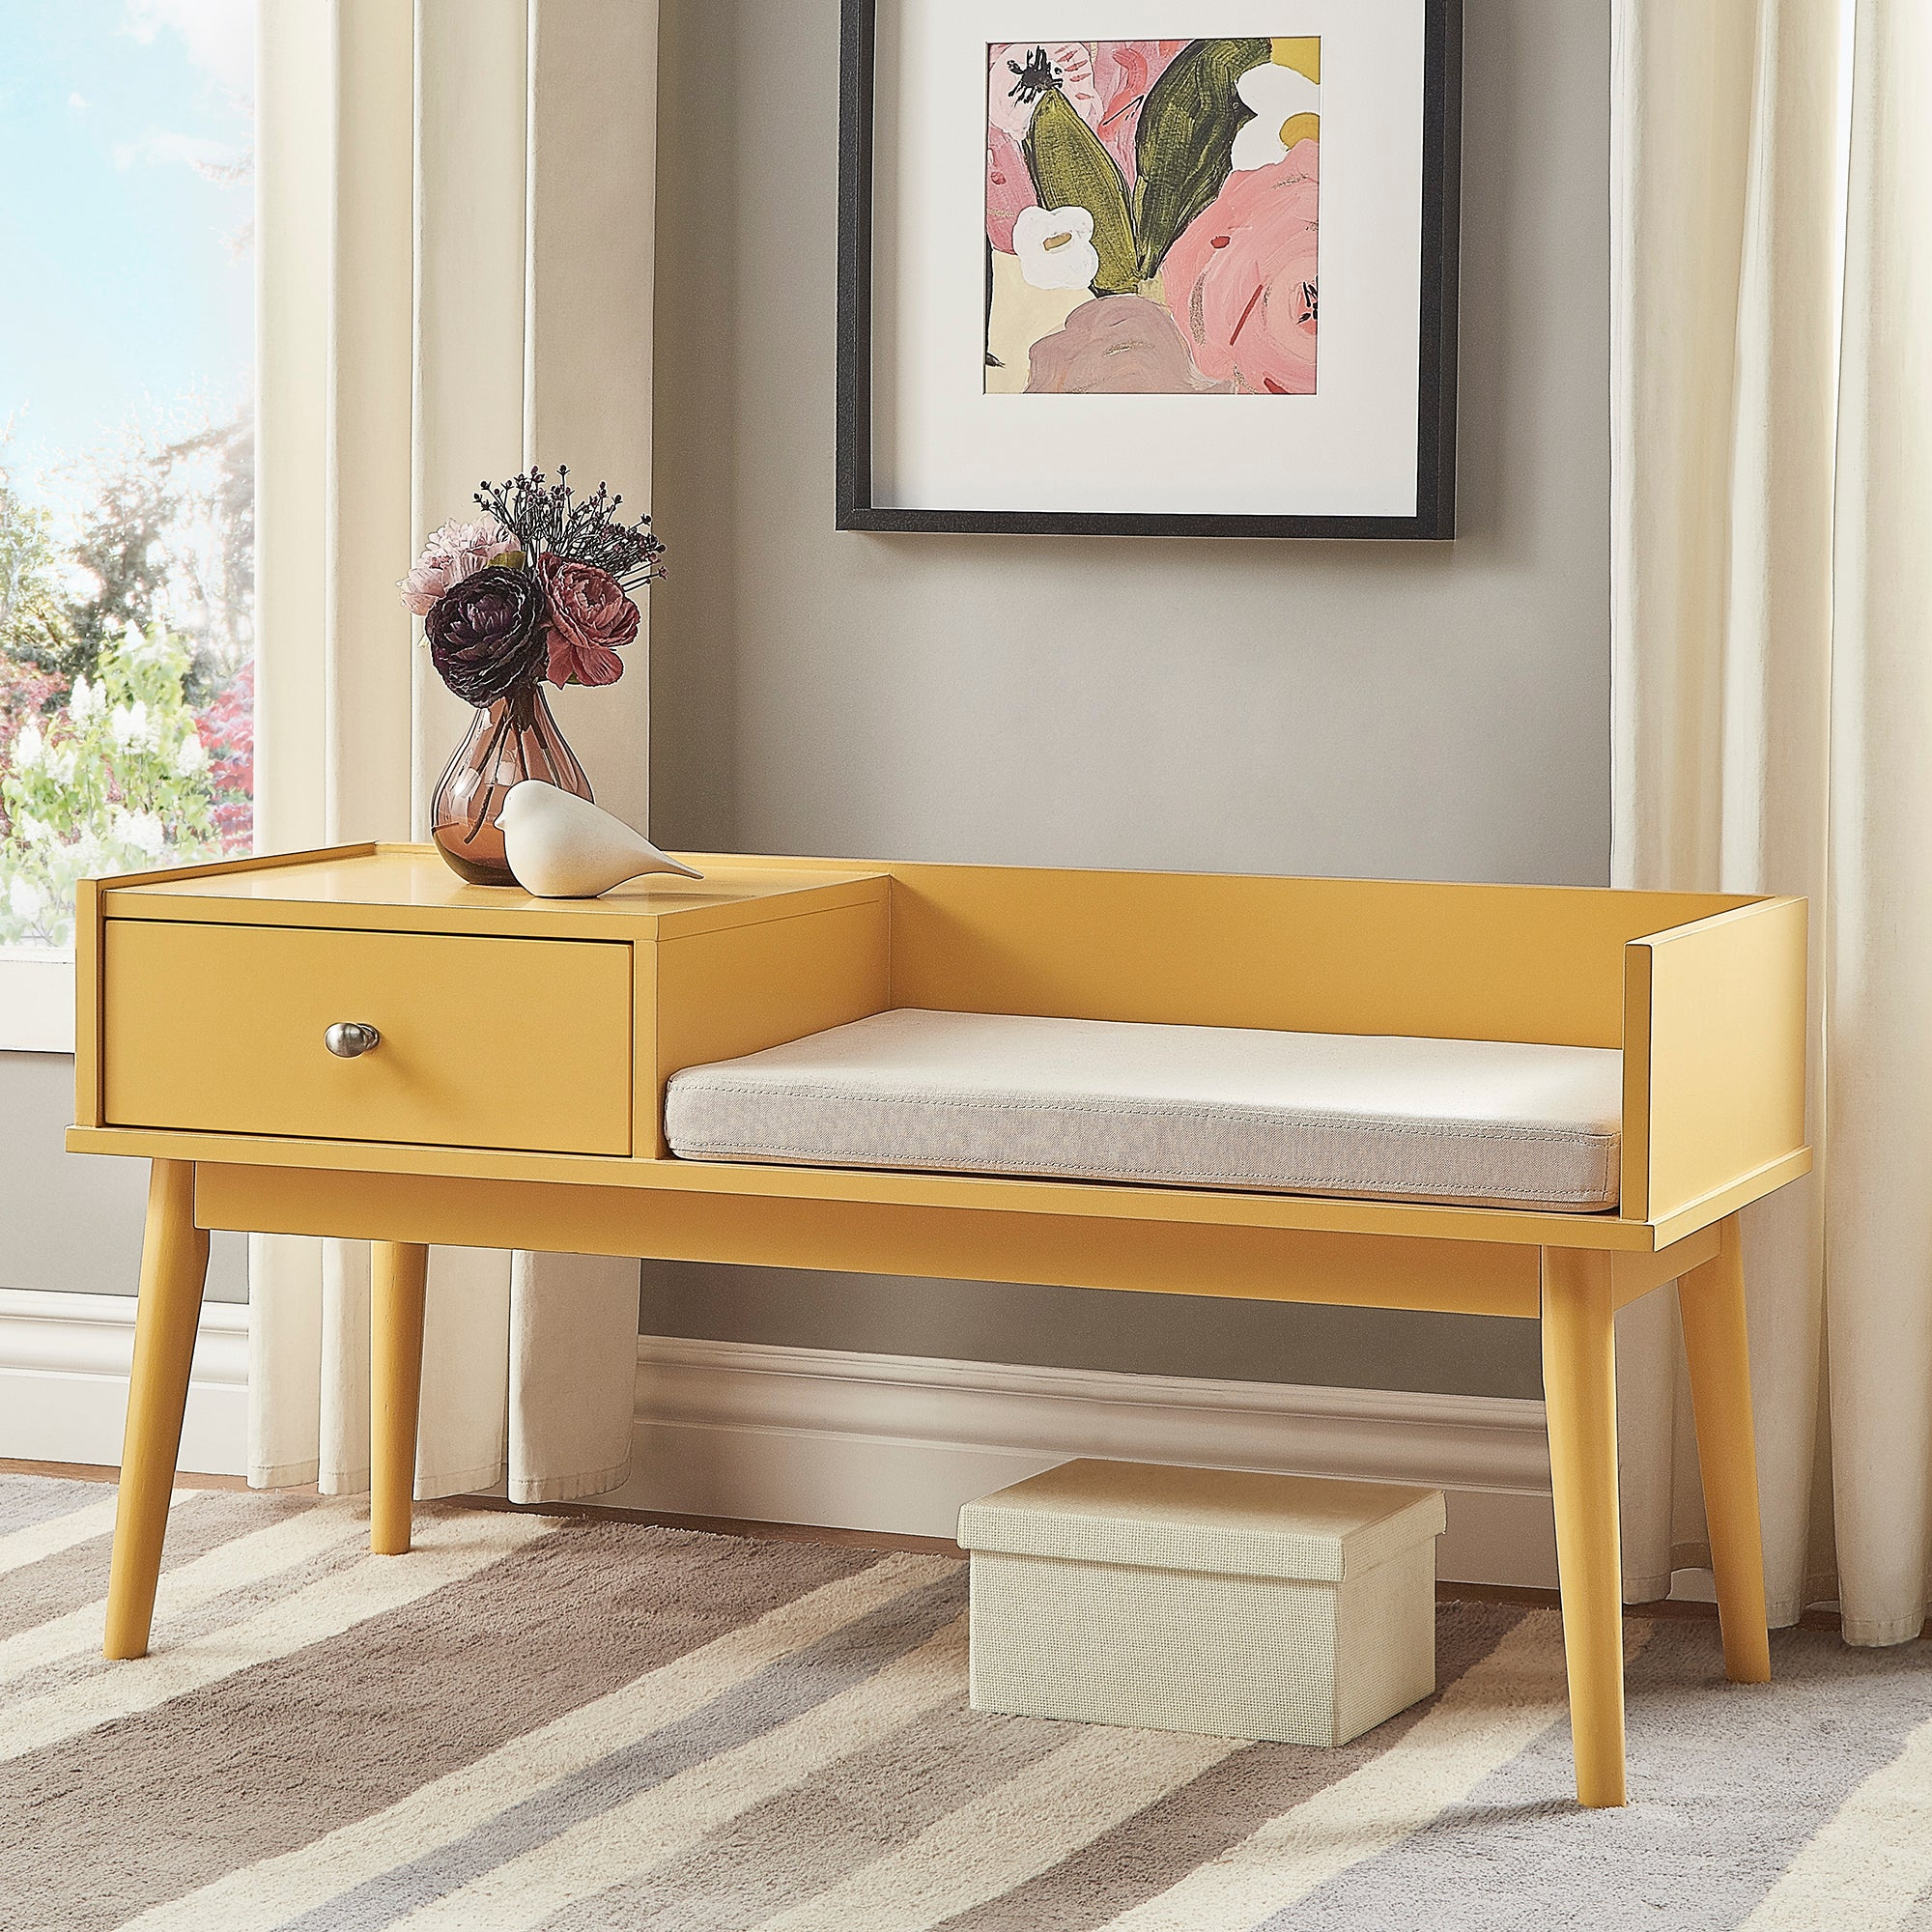 1-Drawer Cushioned Entryway Bench - Banana Yellow